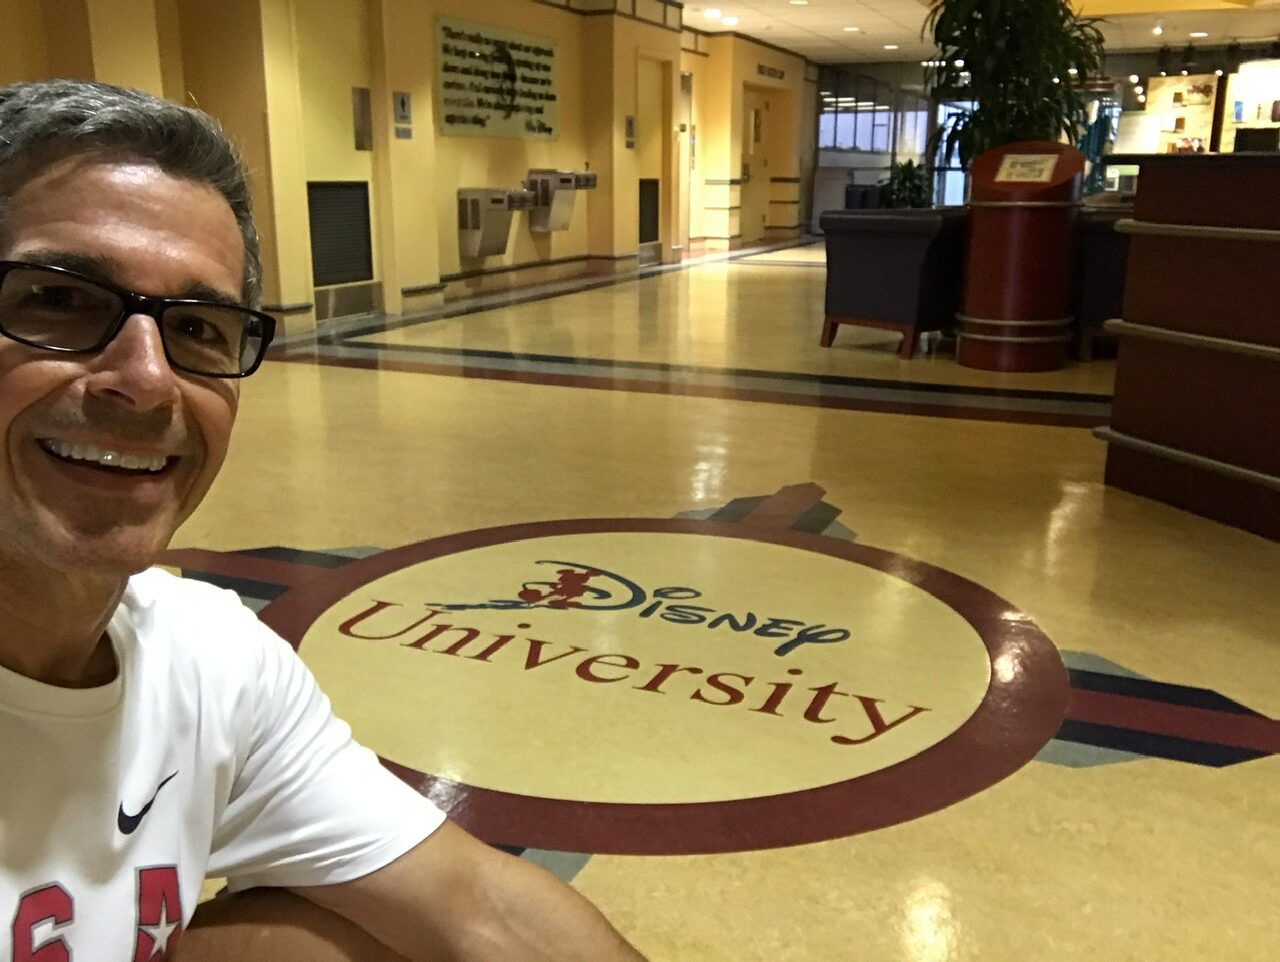 Man at Disney University lobby